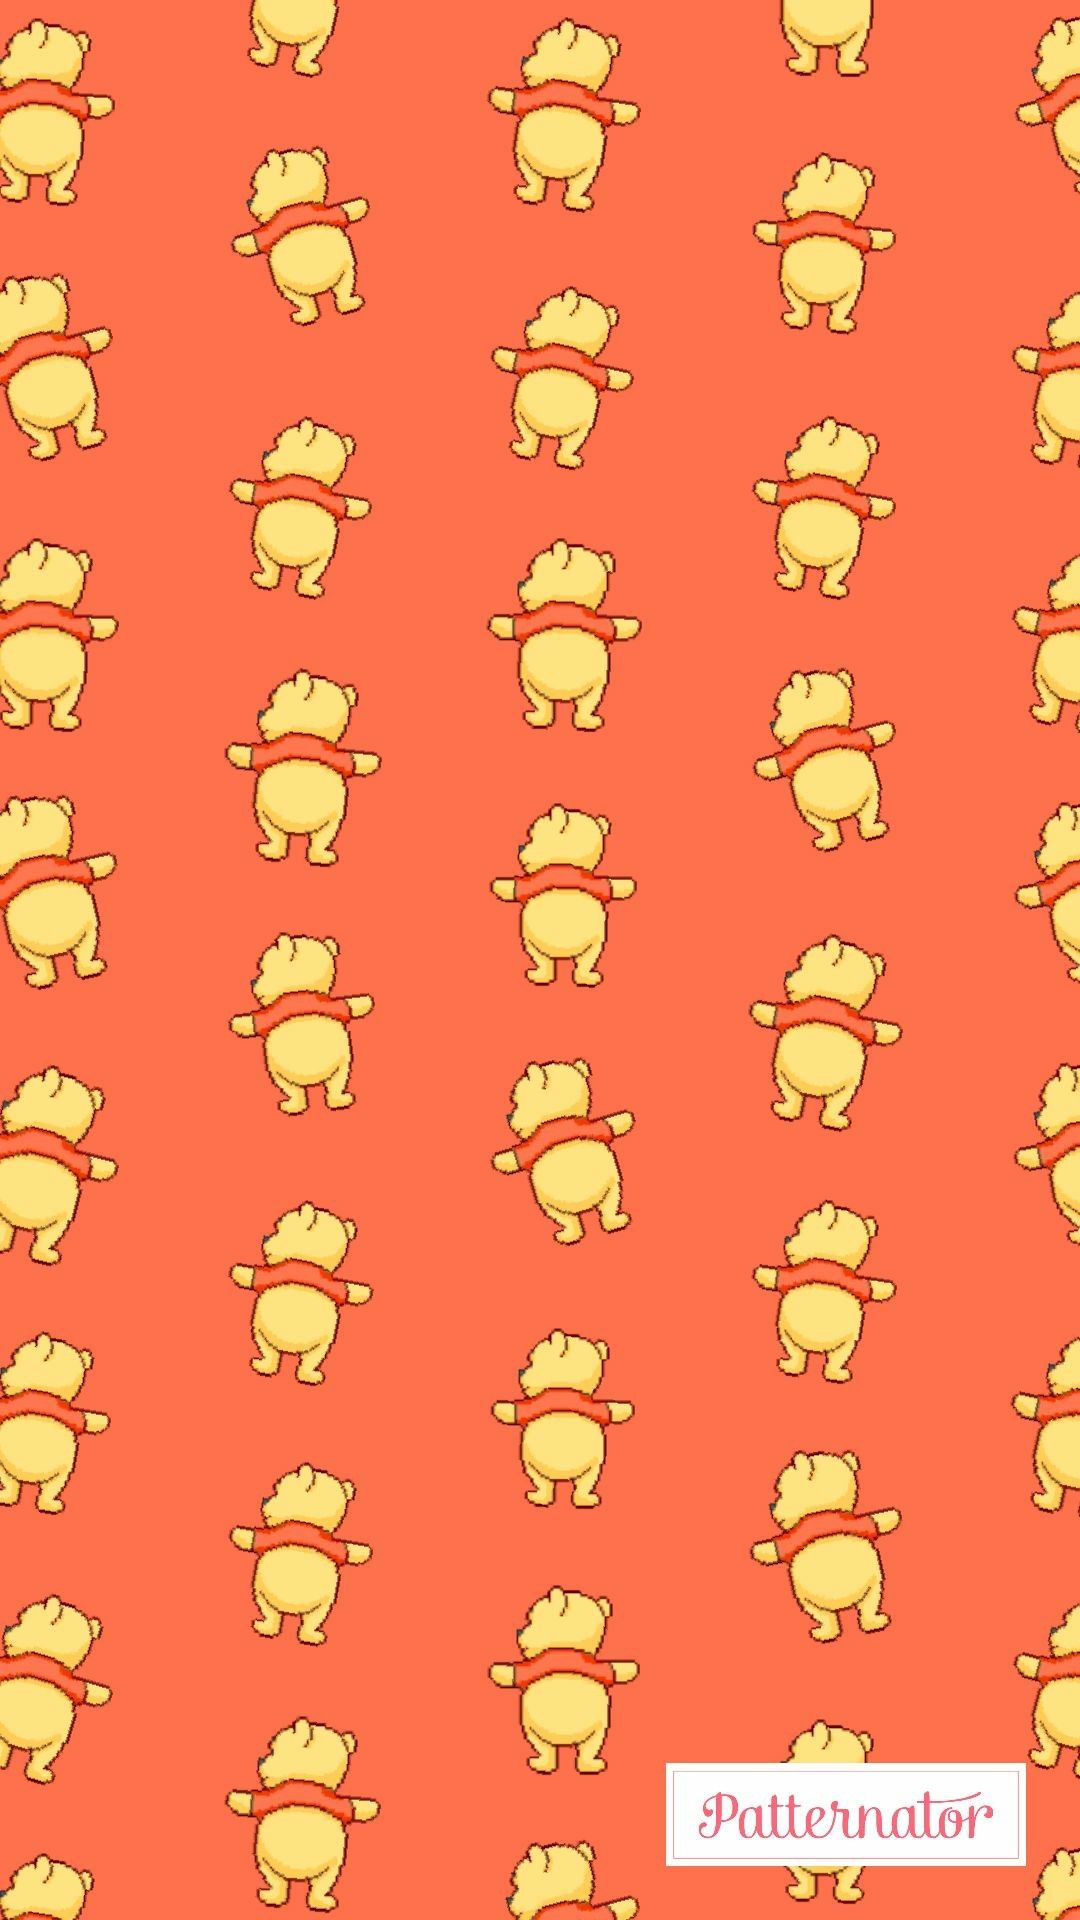 Wallpaper Pooh With Images Cute Winnie The Pooh Disney